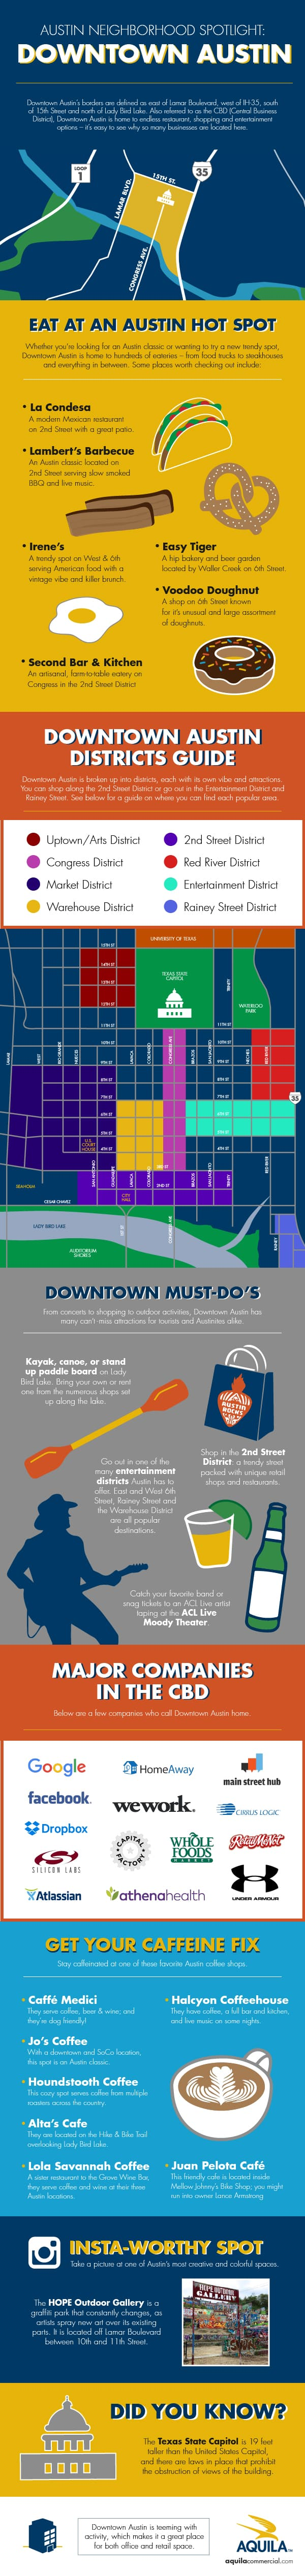 Downtown Austin Infographic: What to do and where to eat in Austin's Downtown neighborhood.